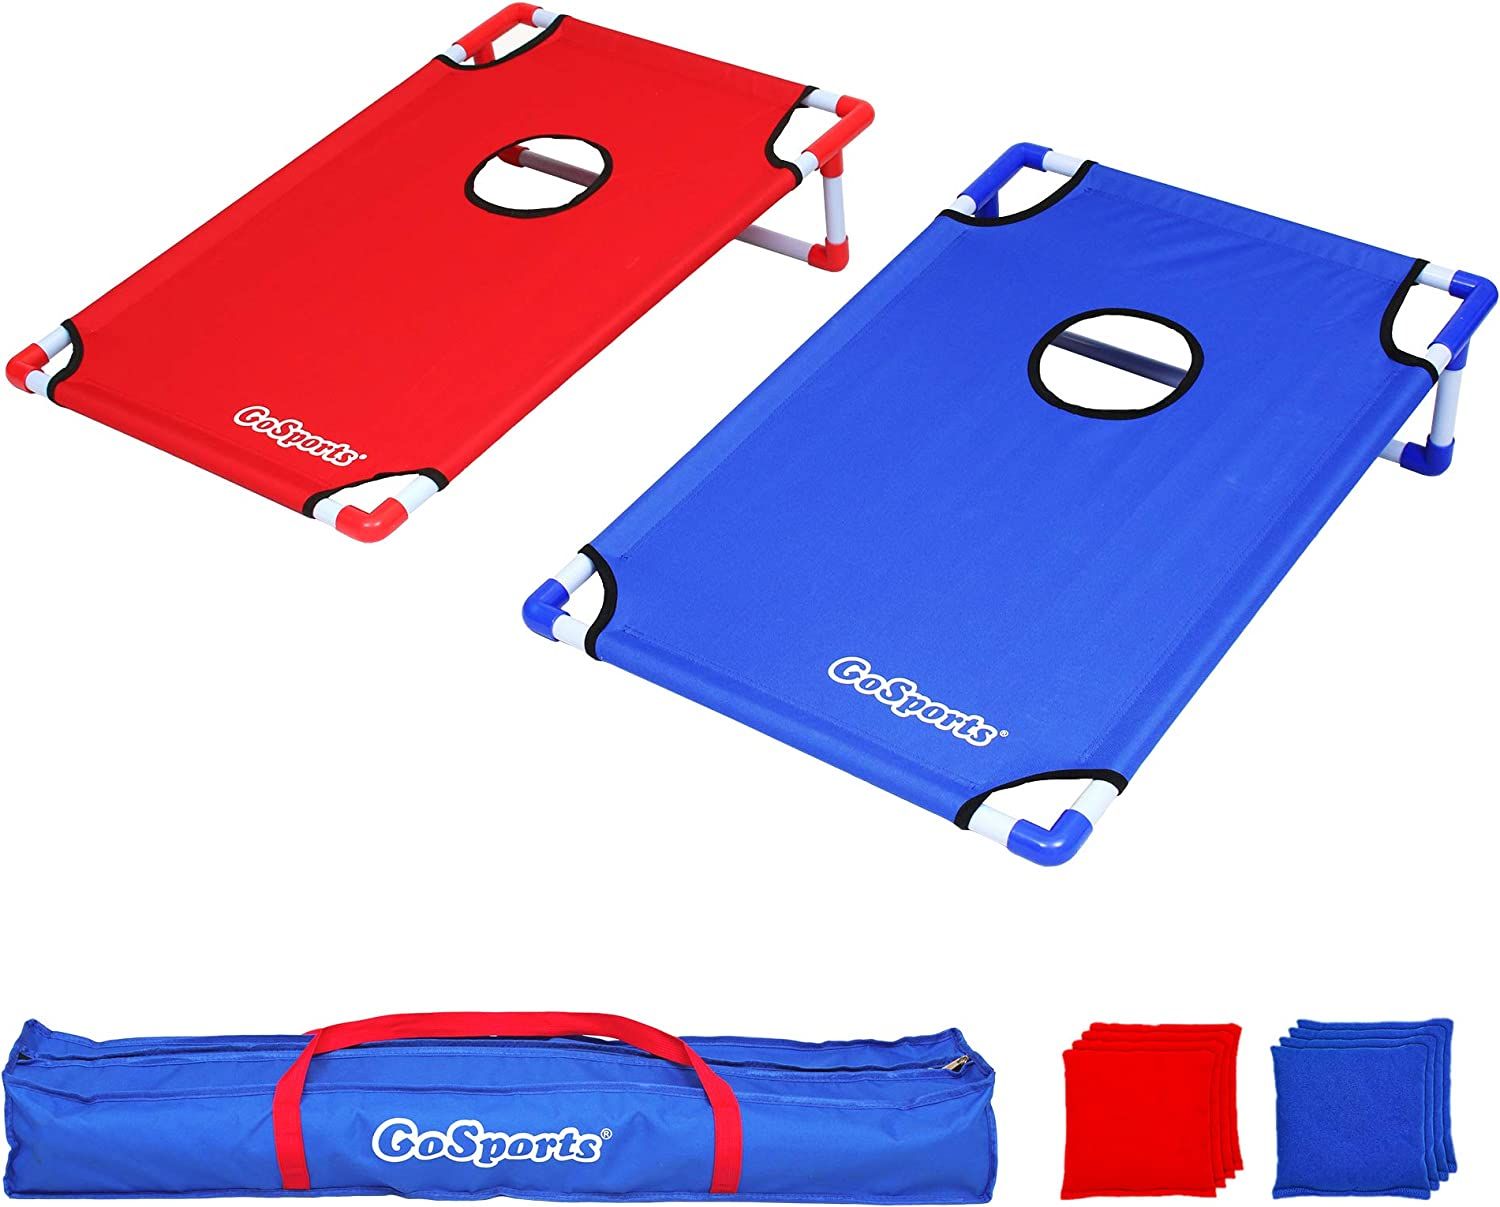 CORNHOLE BEANBAG TOSS GAME w Bags Game Boards Loaded Revolver Set 1100